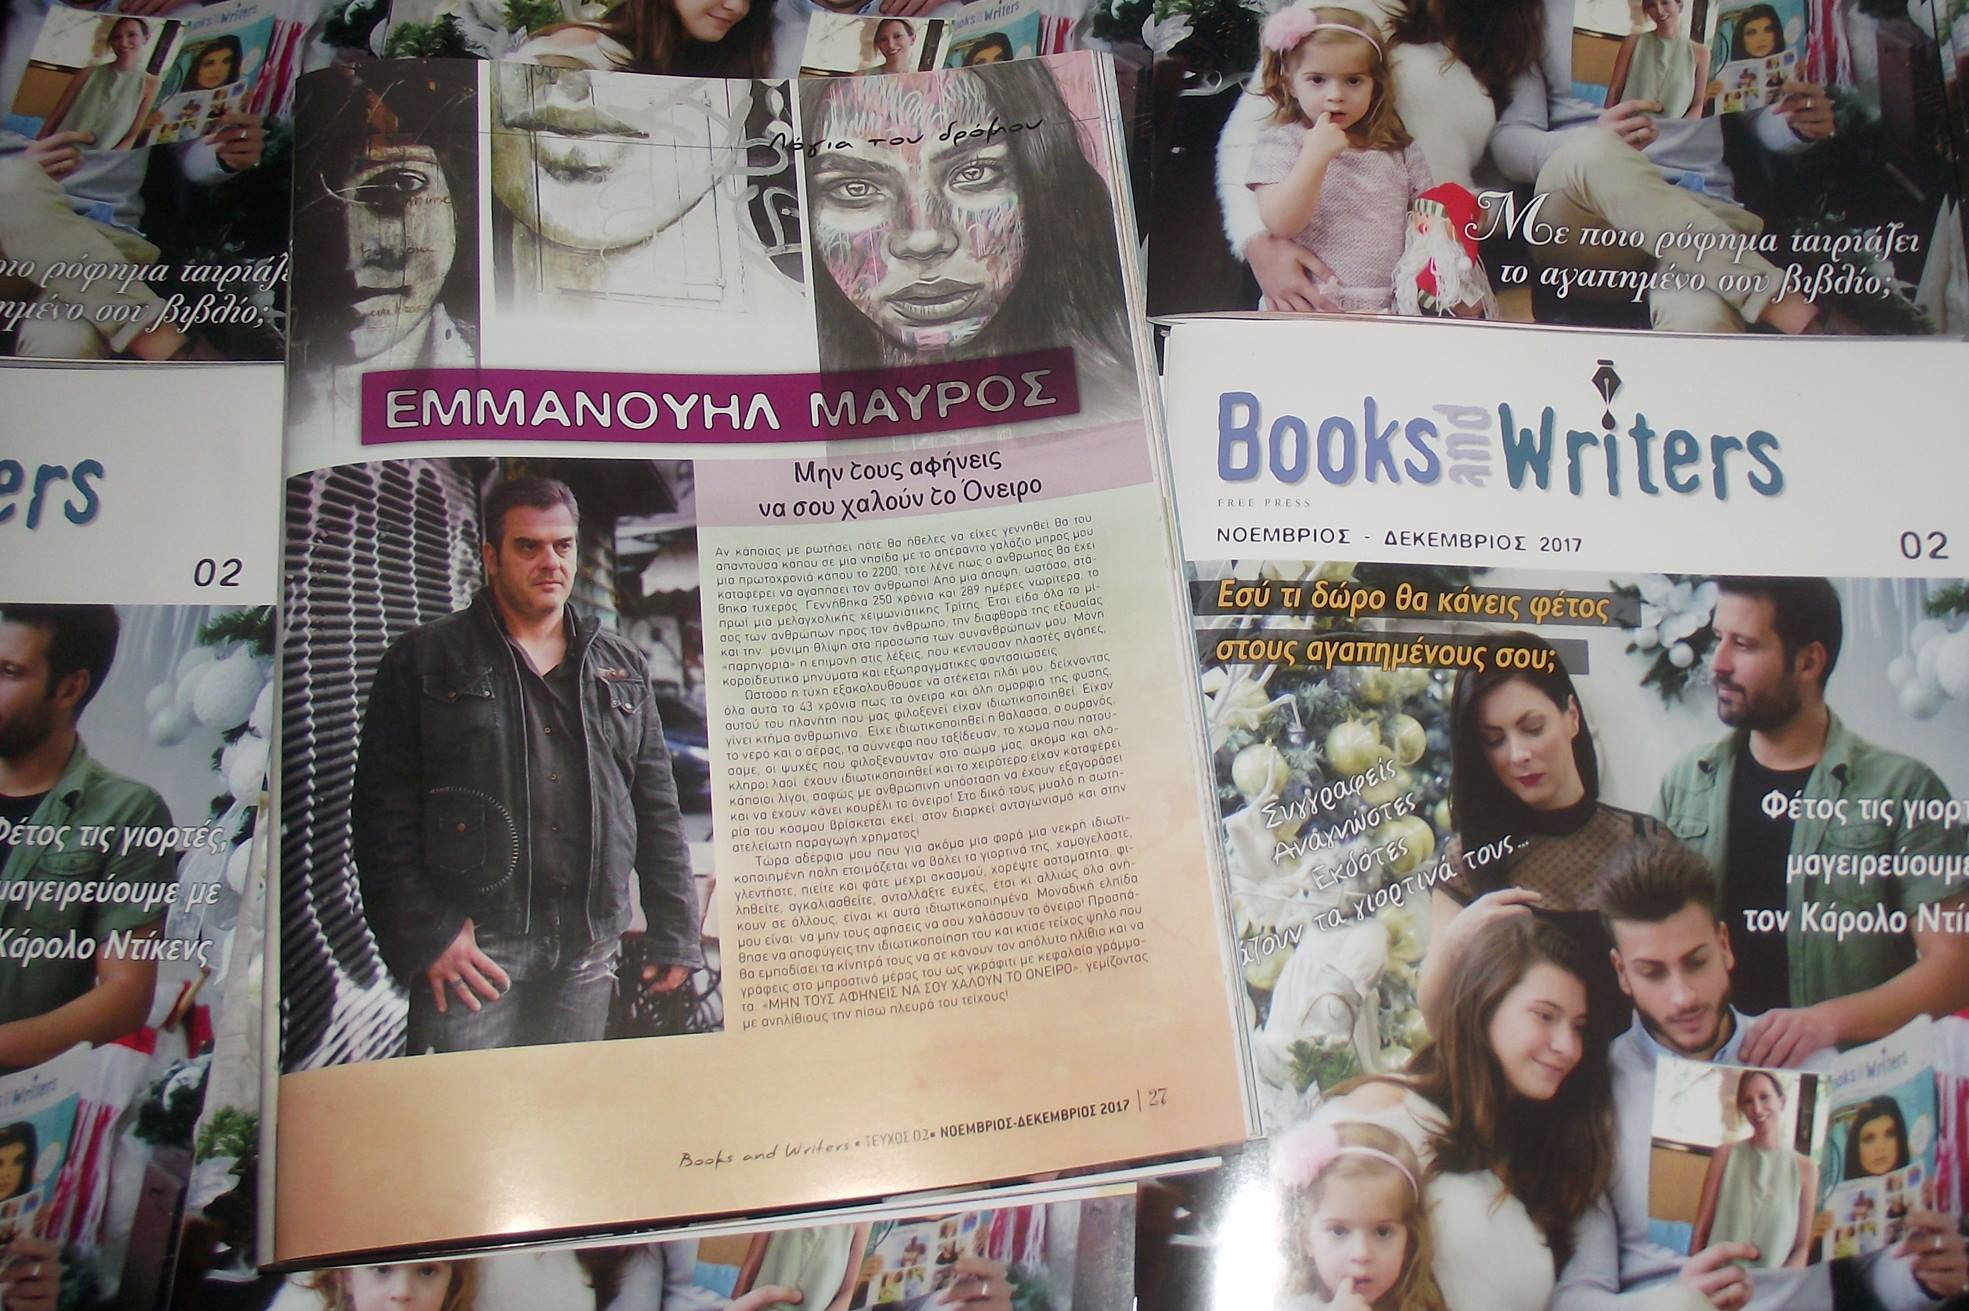 Emmanuel Mavros - Books and Writers